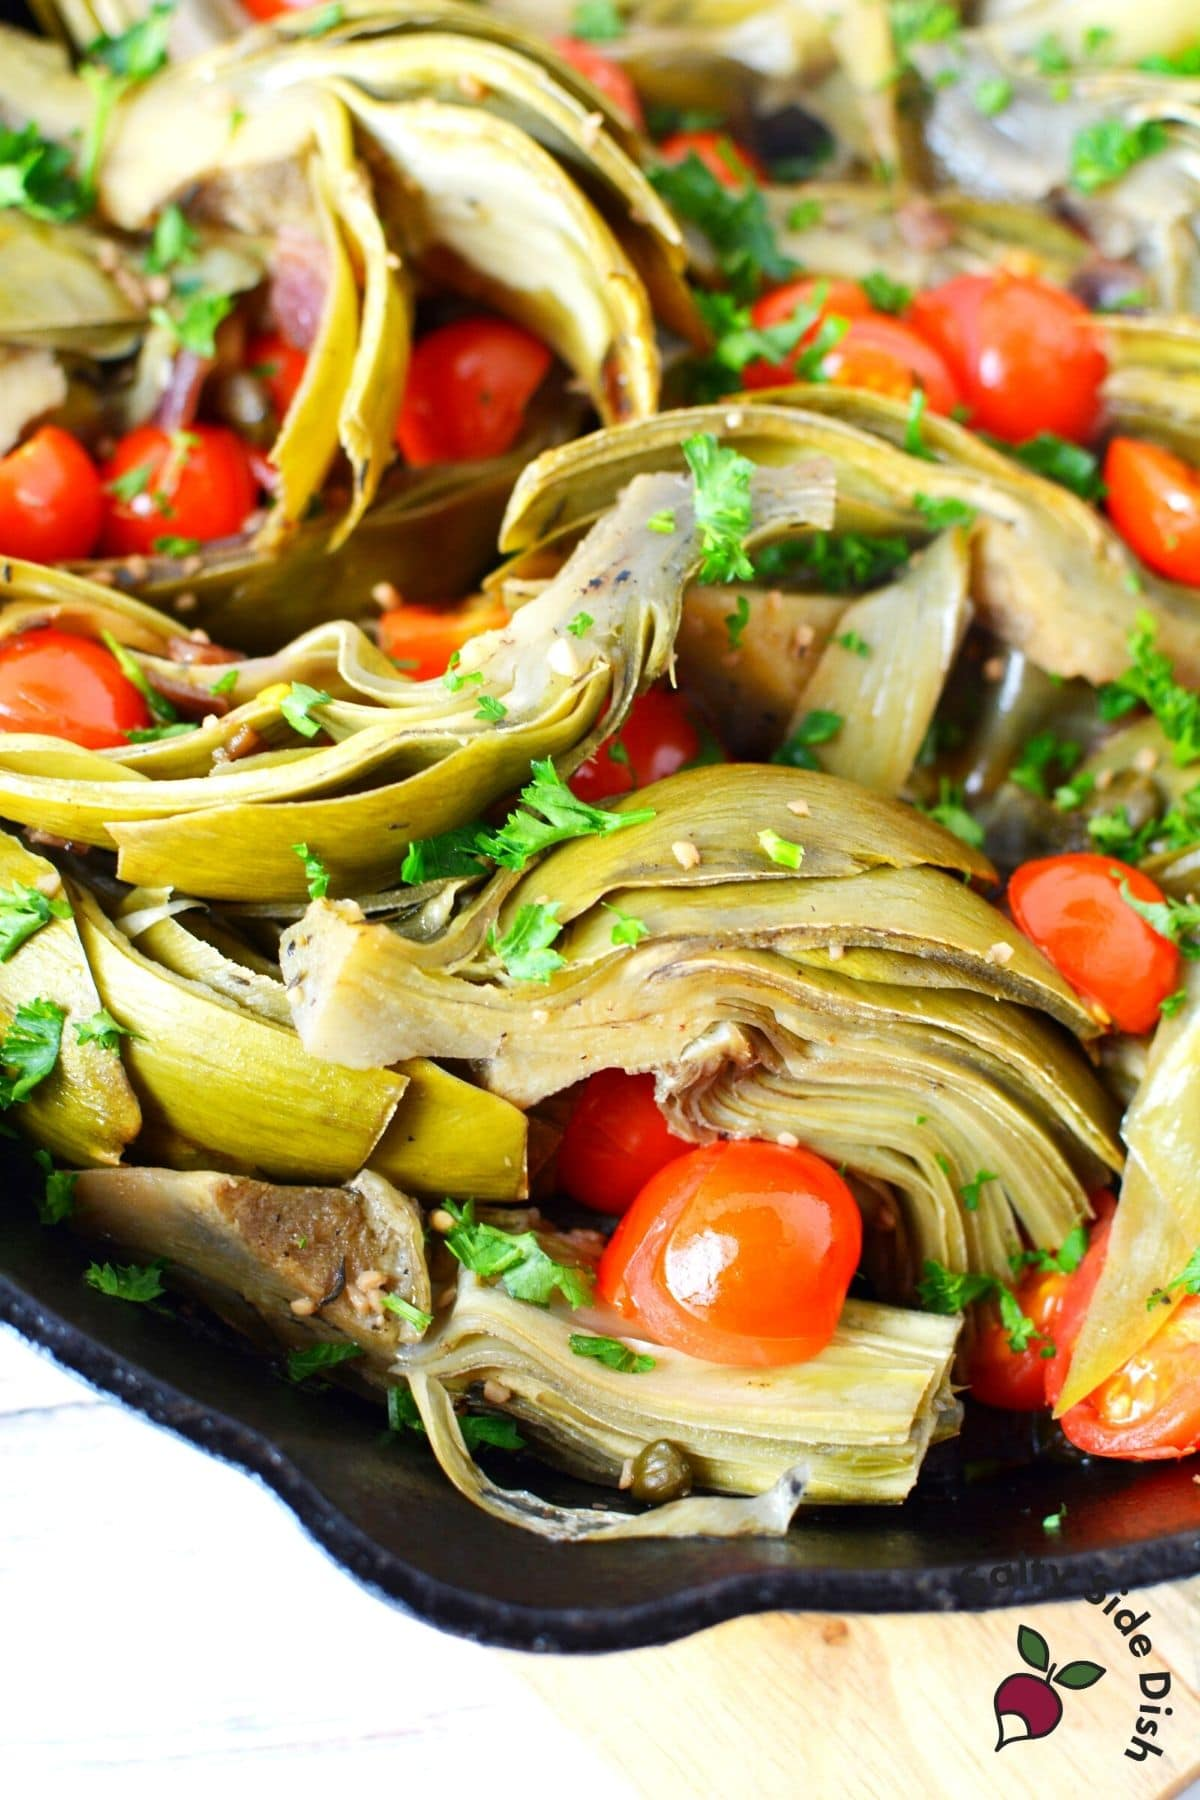 braised artichokes warm side dish in a cast iron skillet